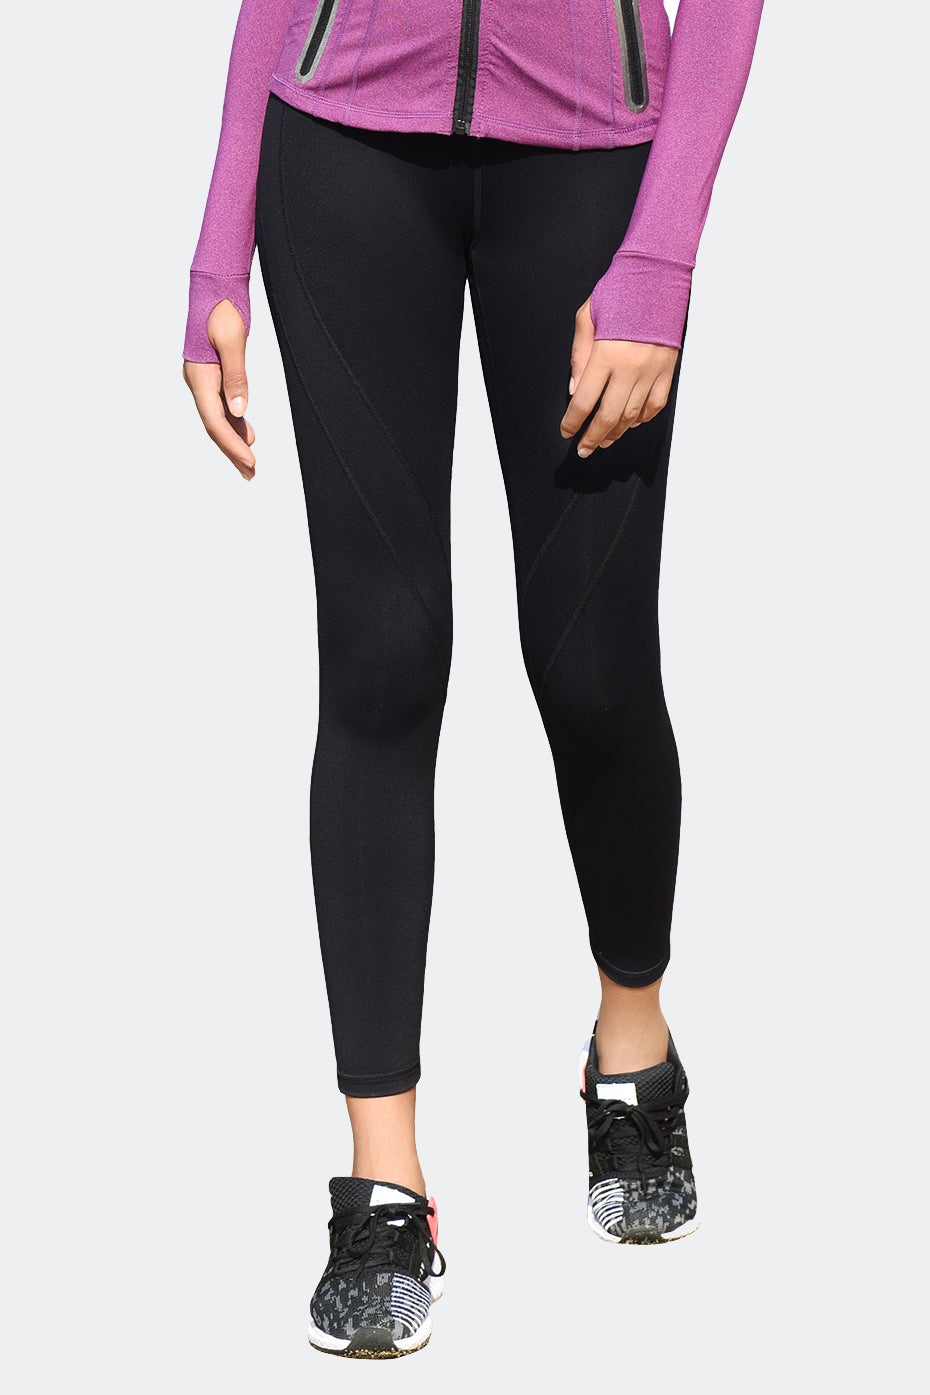 Ongasoft Yoga pants-K9004Black-Front